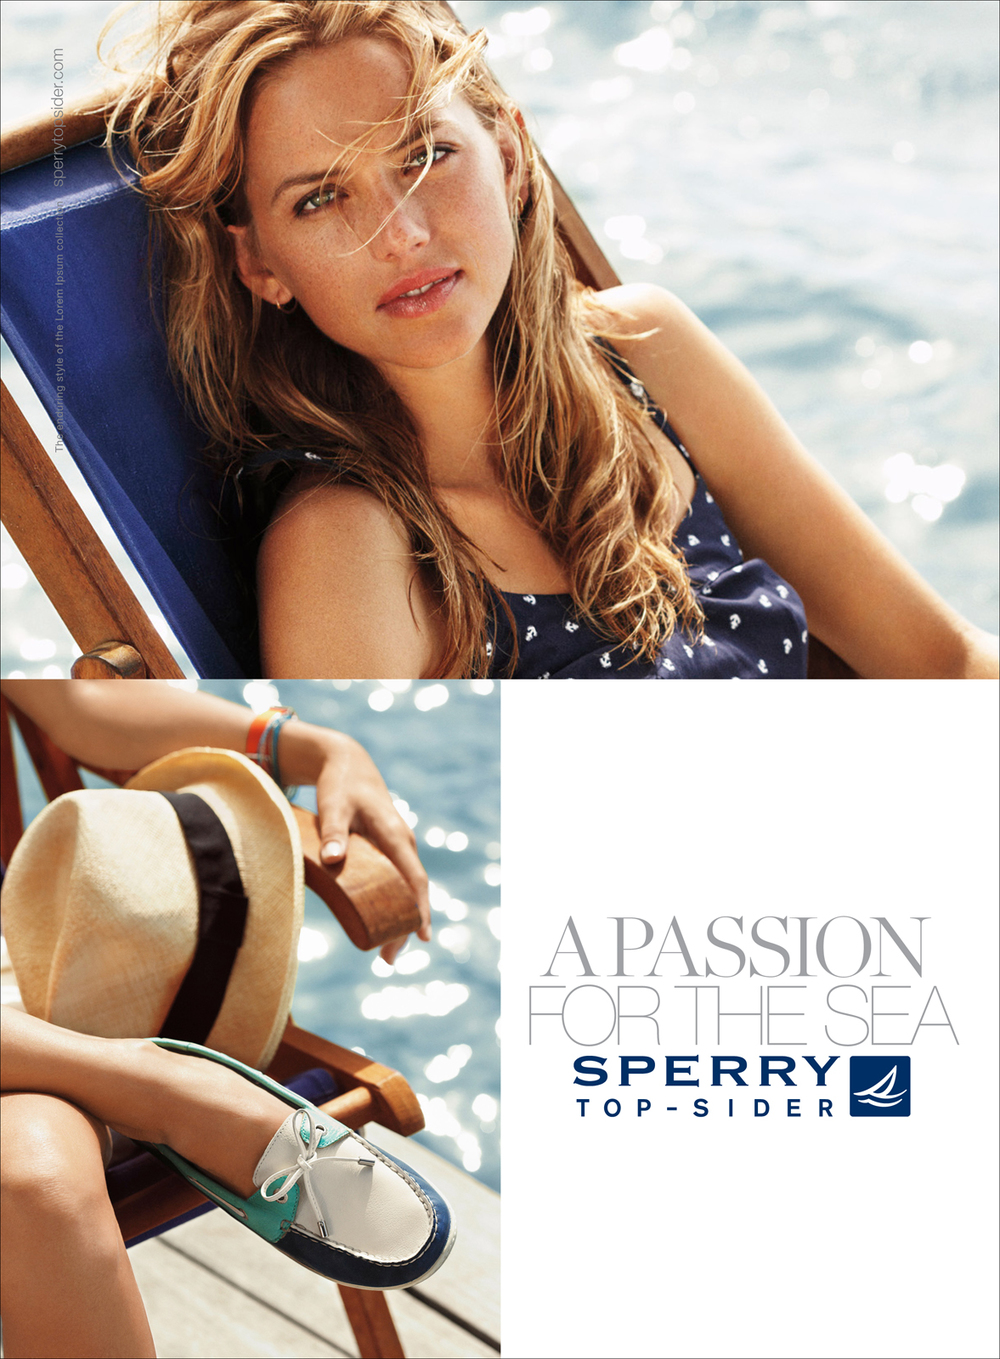 SC_ADVERTISING_SPERRY_KEYS_SS_2010_06.jpg